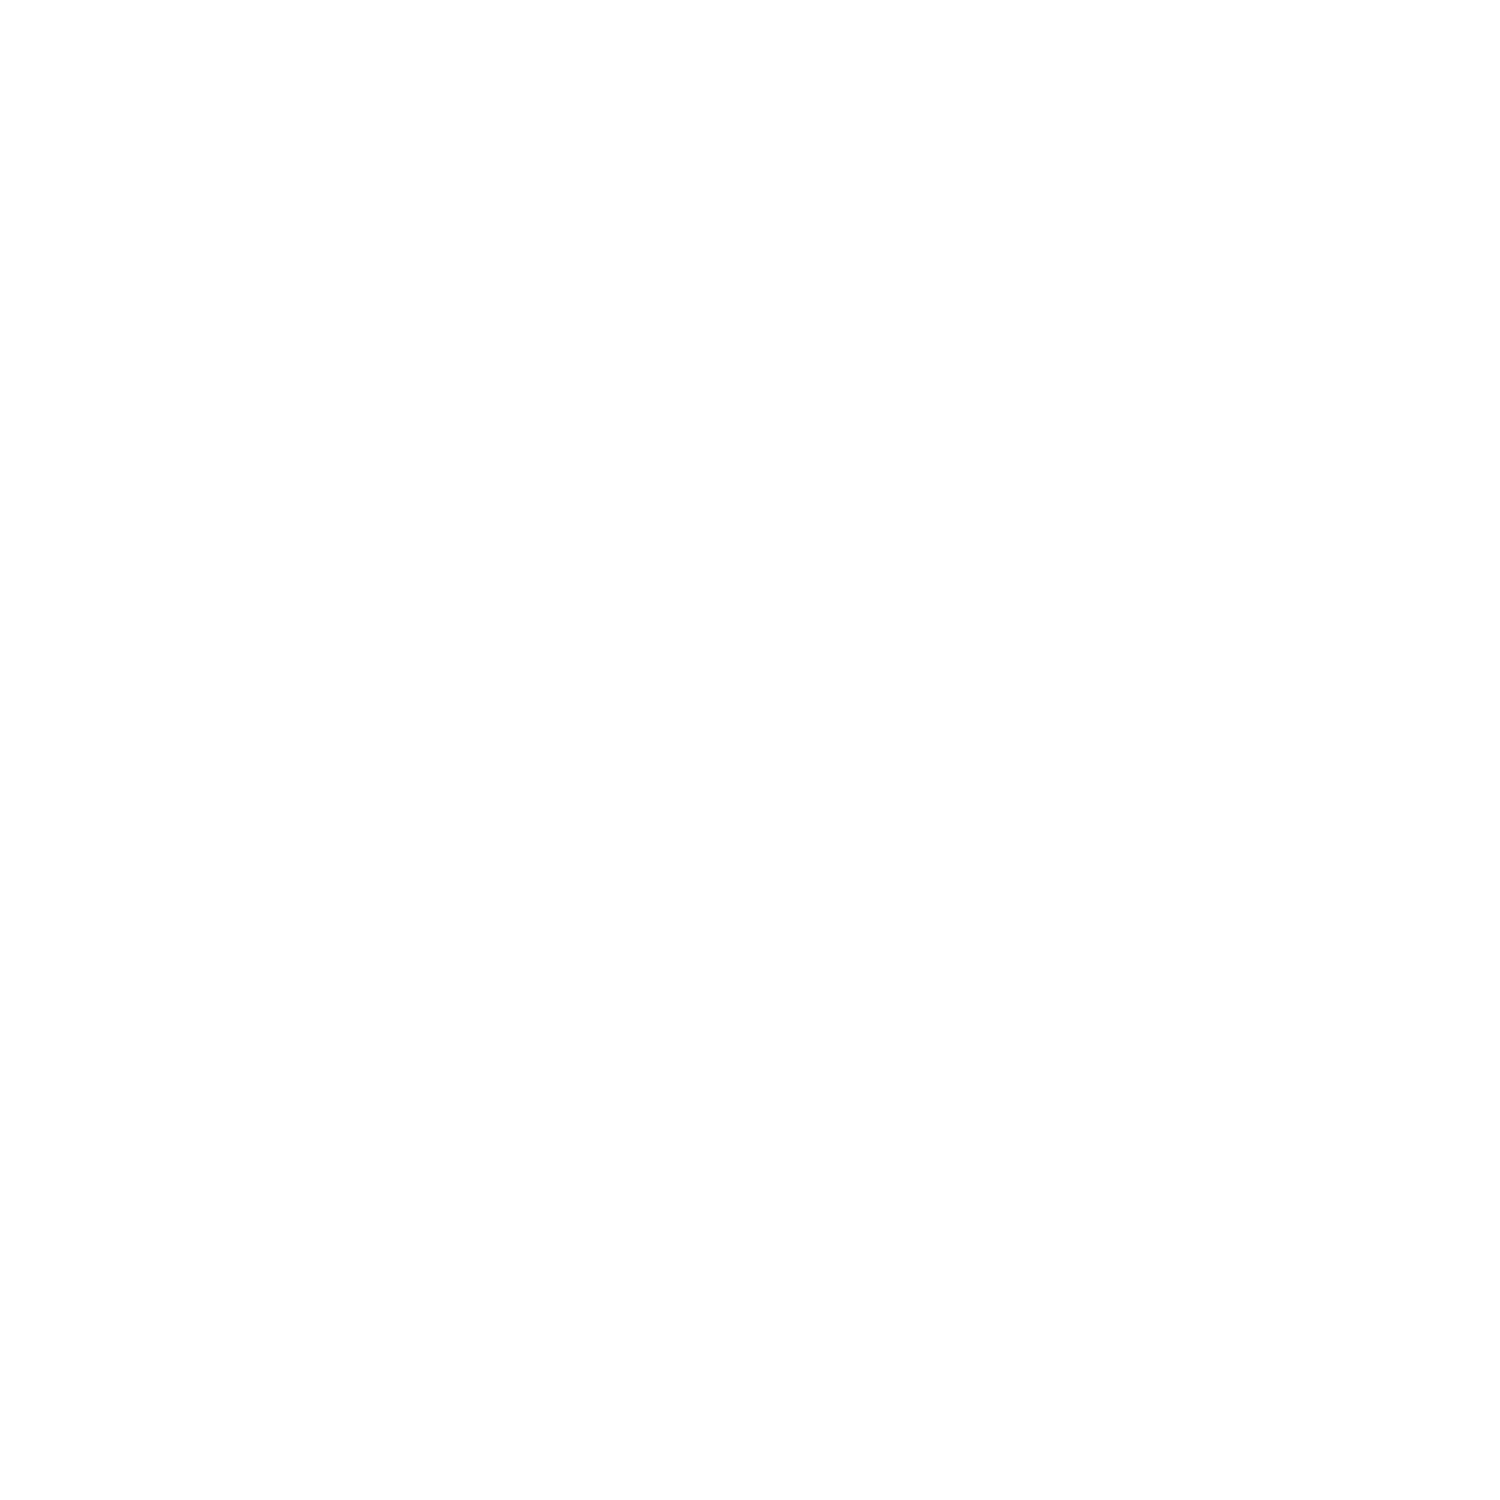 Chicago Arts and Music Project